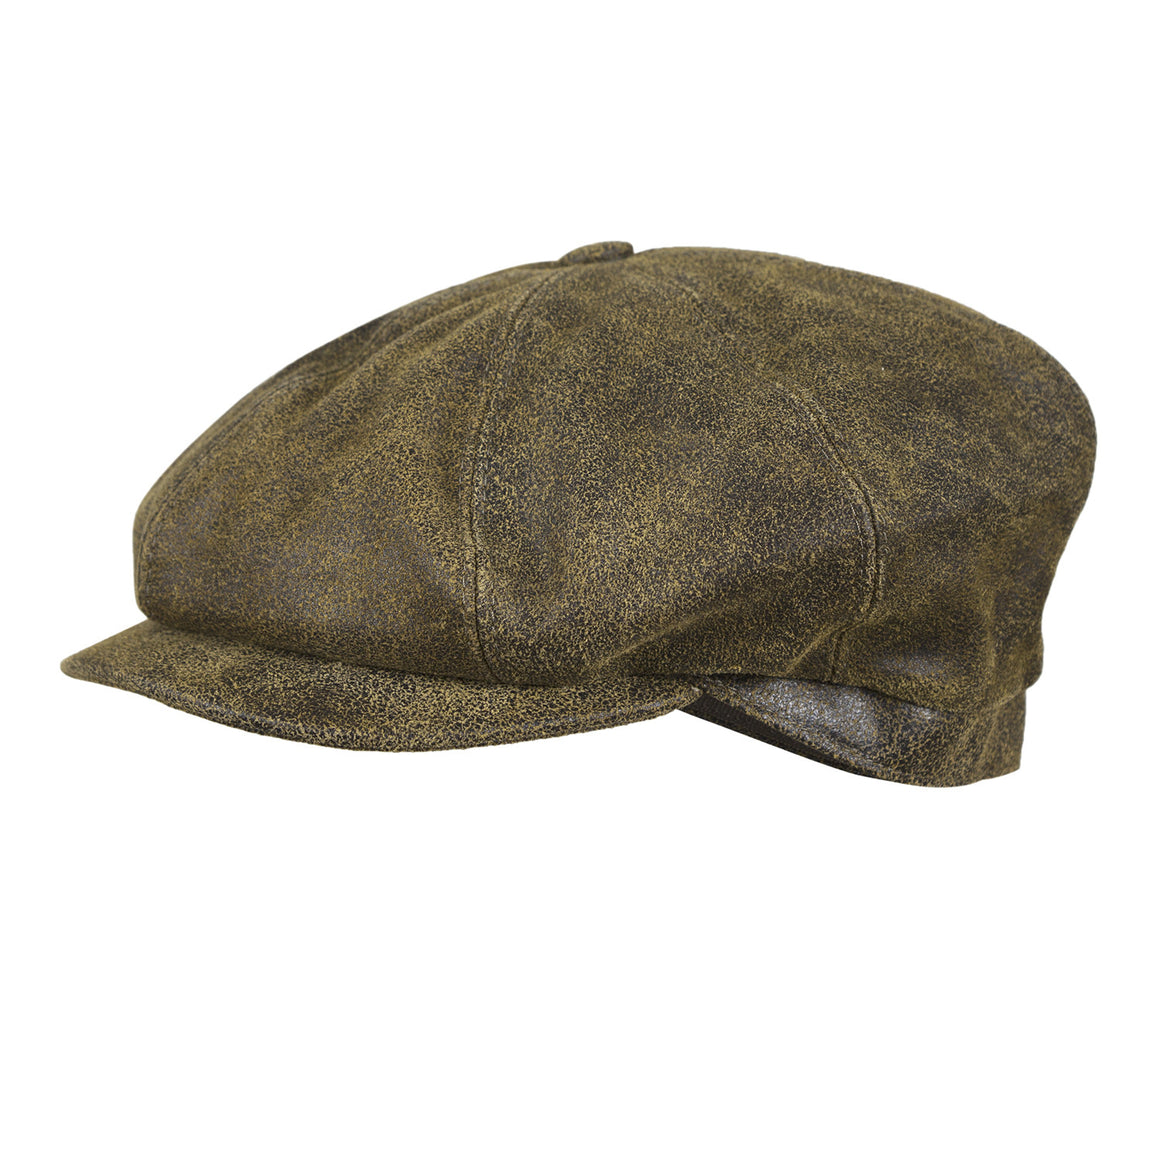 c4f506c16 Mens Caps and Hats - The Cashmere Choice